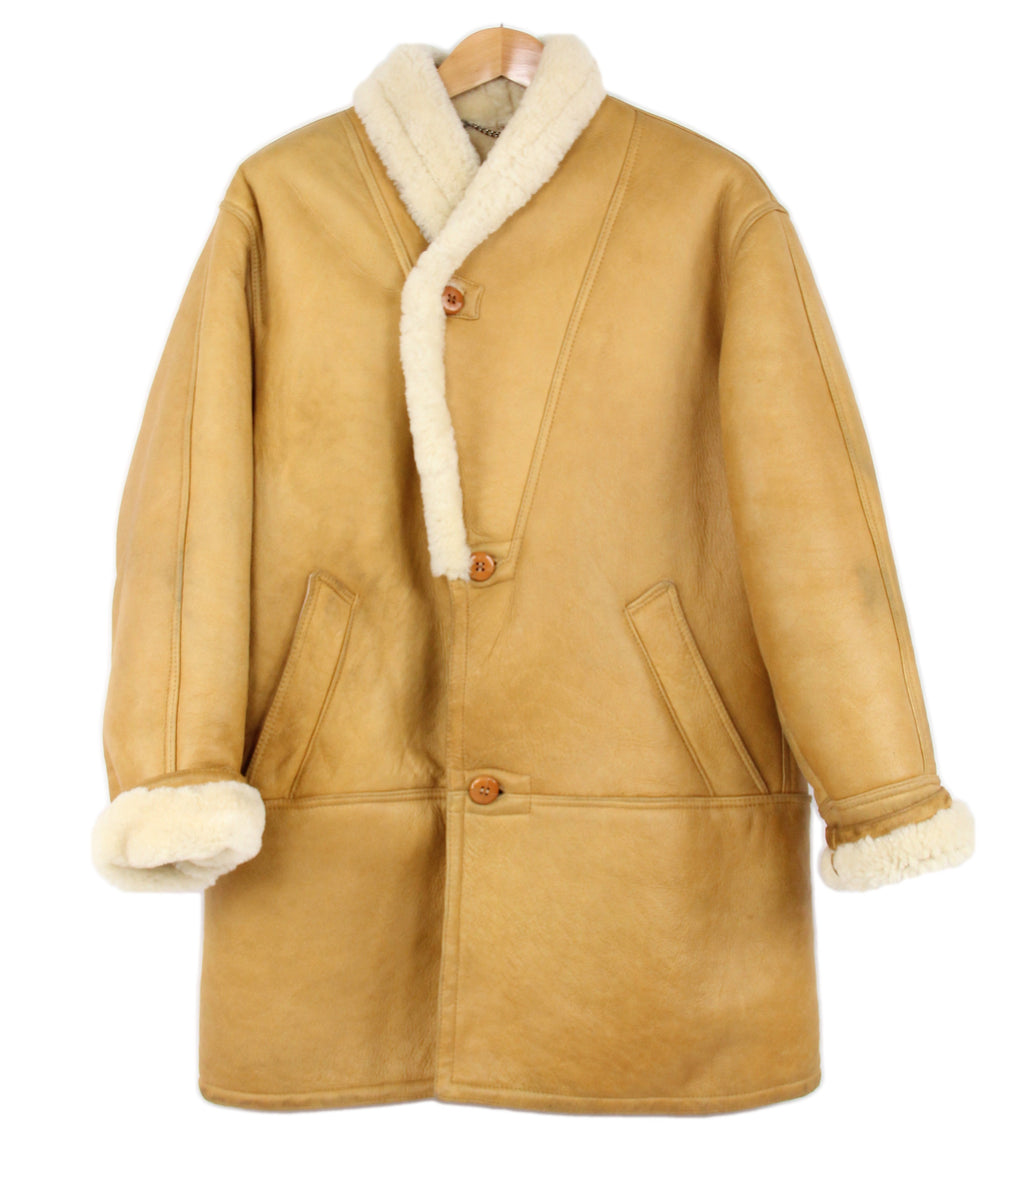 Light Camel Brown Supple And Chunky Shearling Coat, SIZE 42